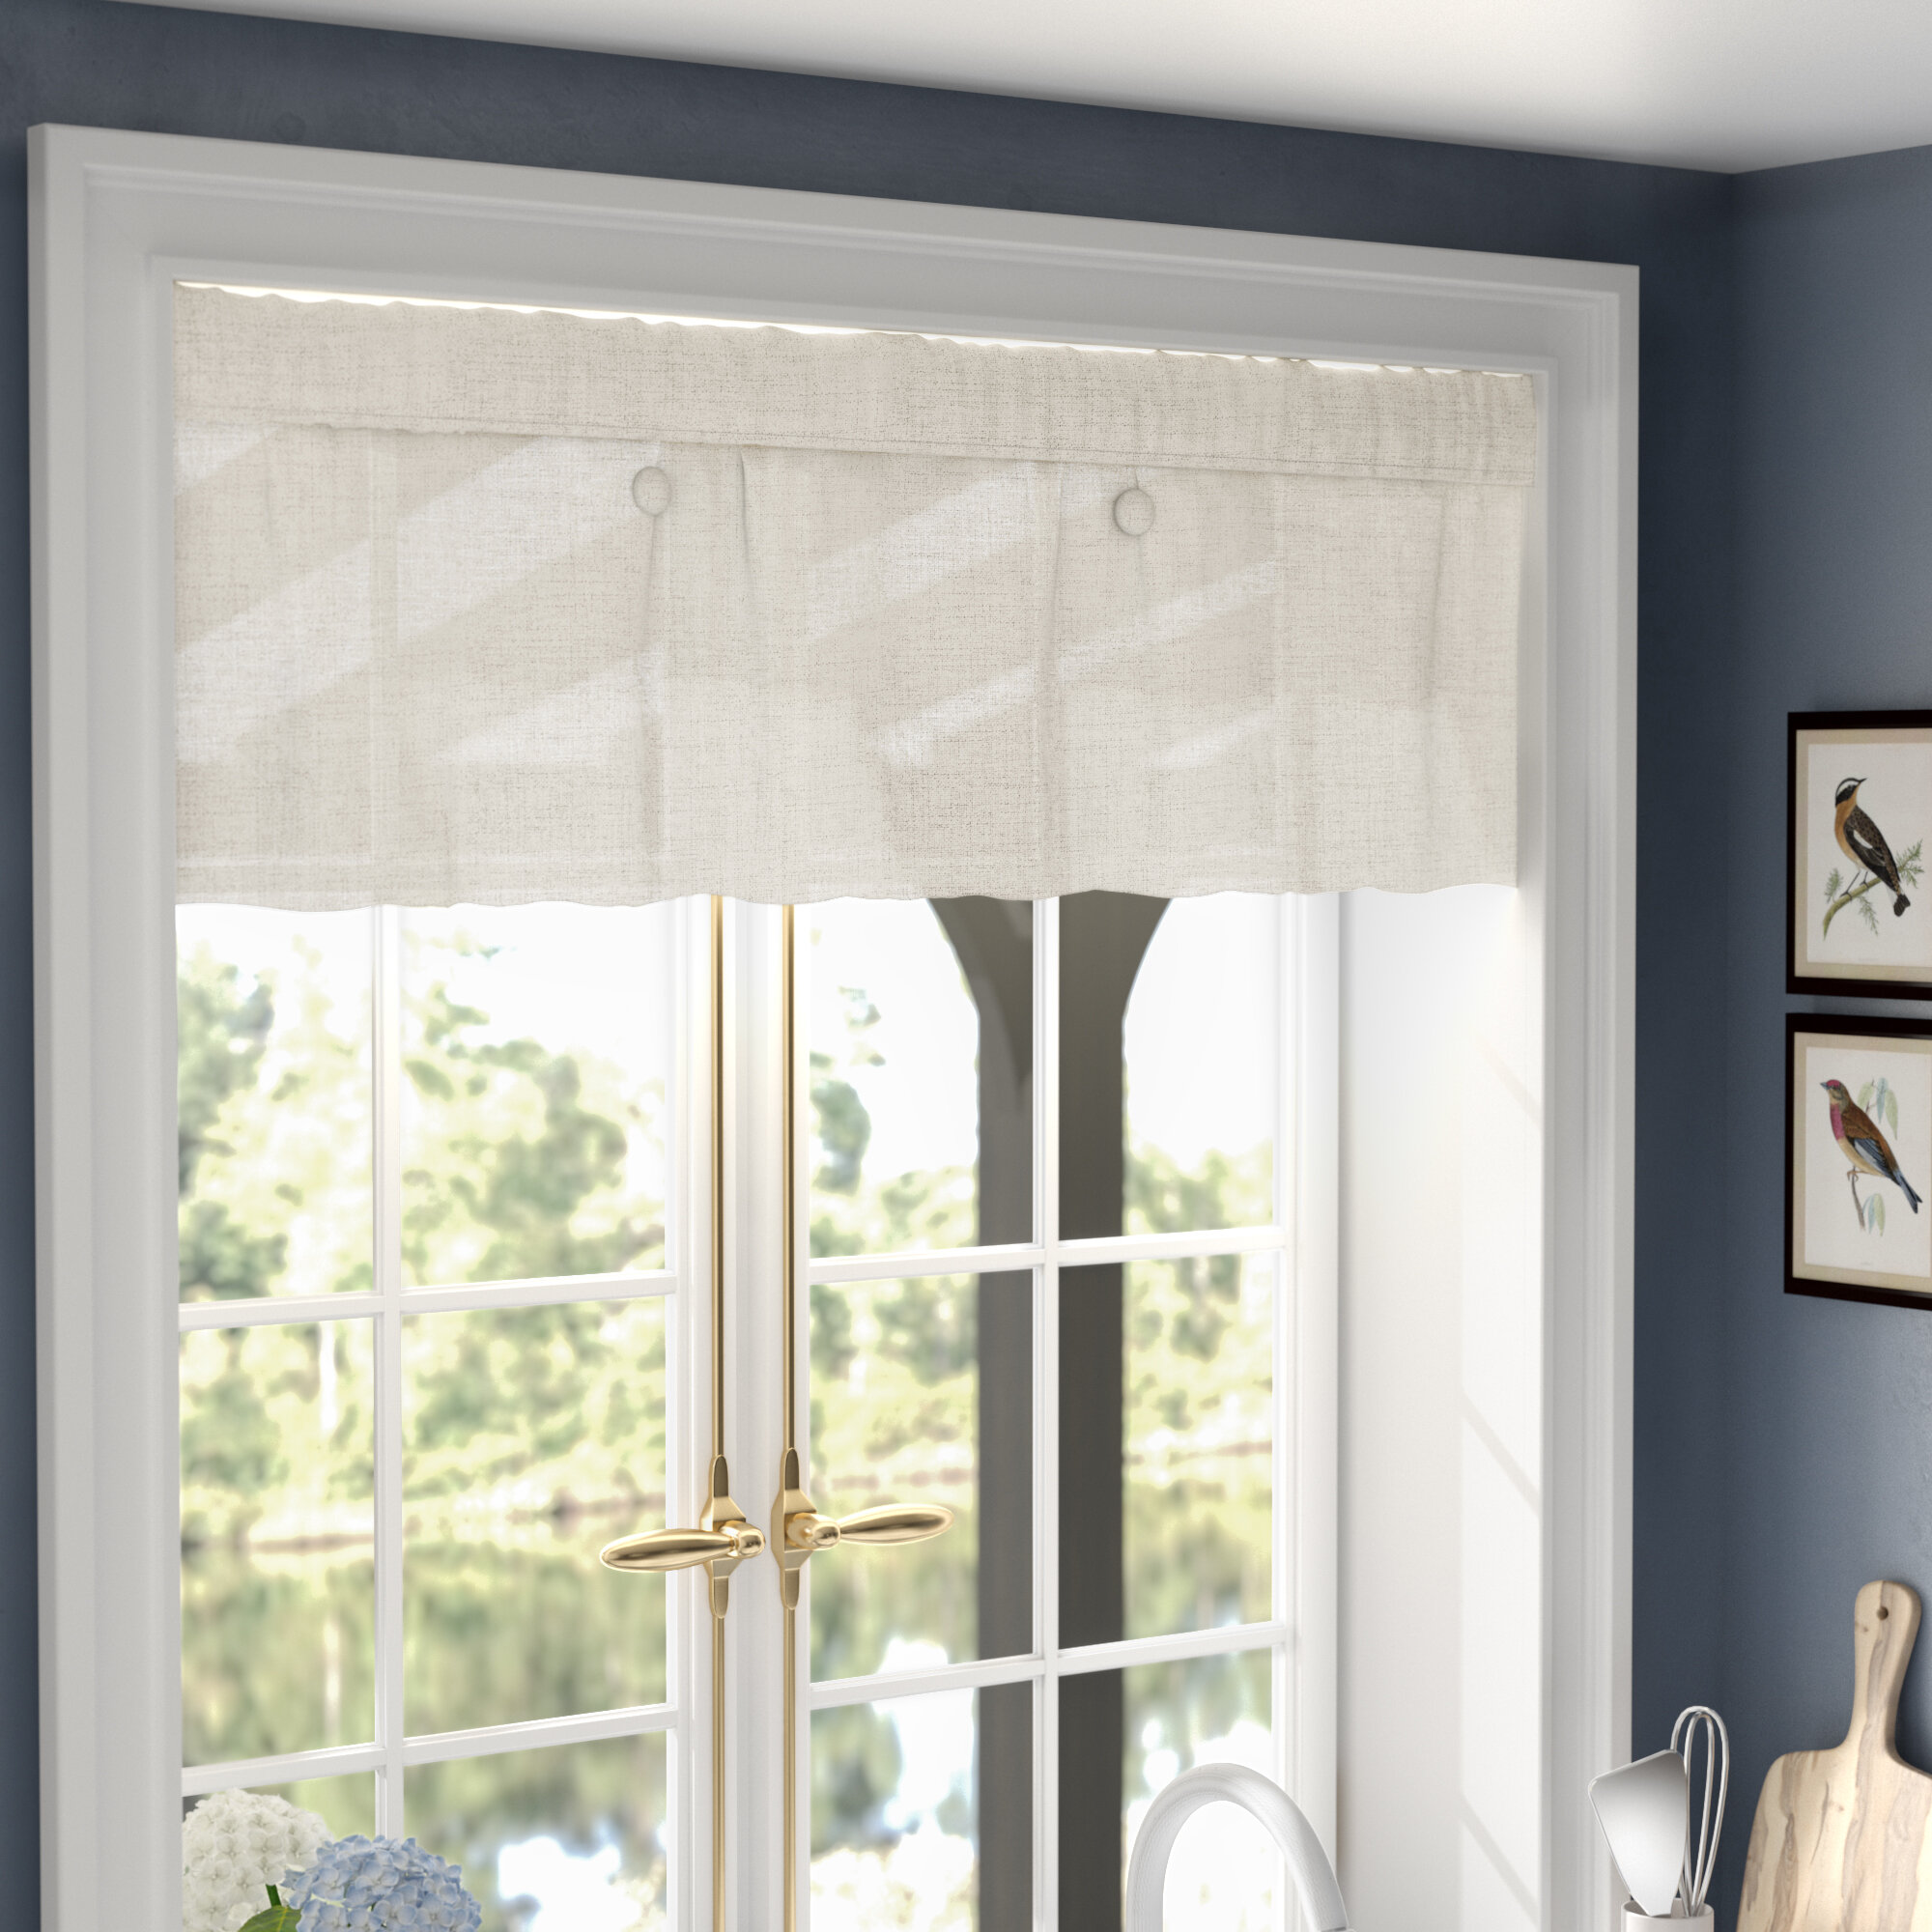 trim pleat pleated window frog inverted box valance pin applied with treatments